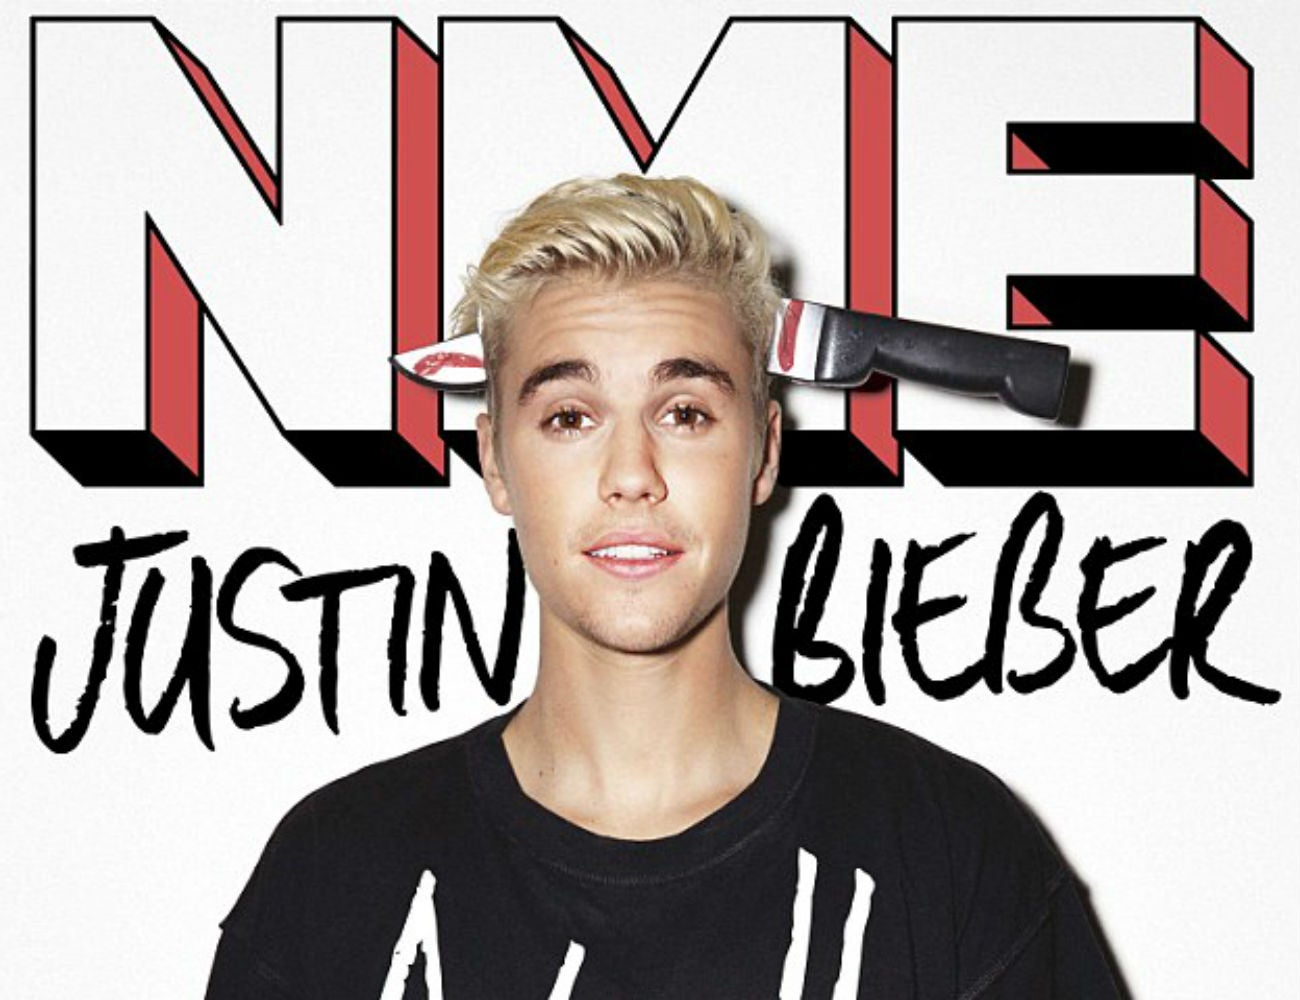 Justin Bieber Arrested Again, Compares Himself To Tupac